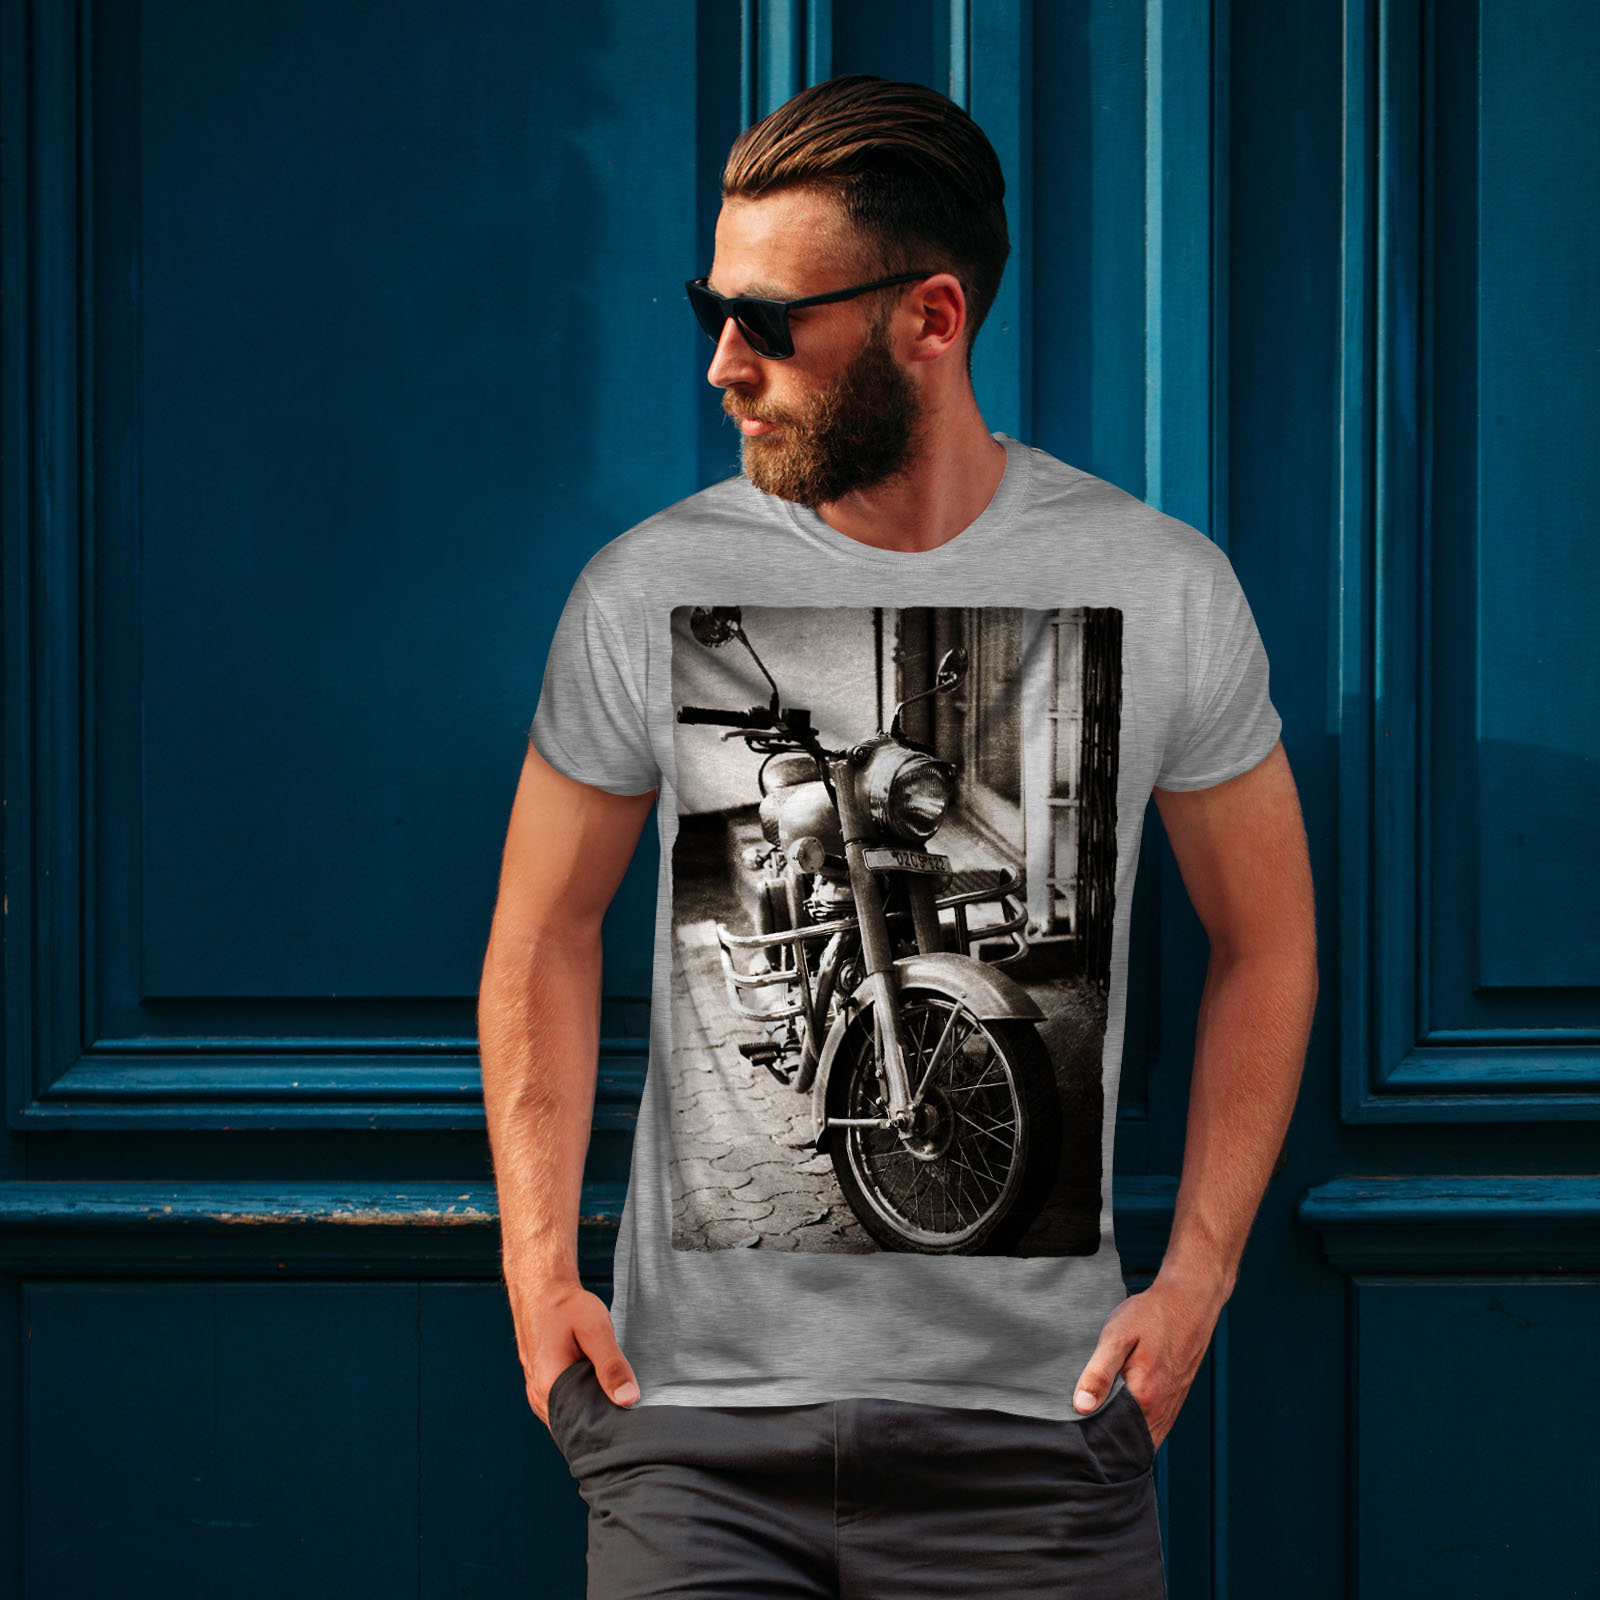 Wellcoda-Old-Retro-Mens-T-shirt-Motorcycle-Graphic-Design-Printed-Tee thumbnail 16